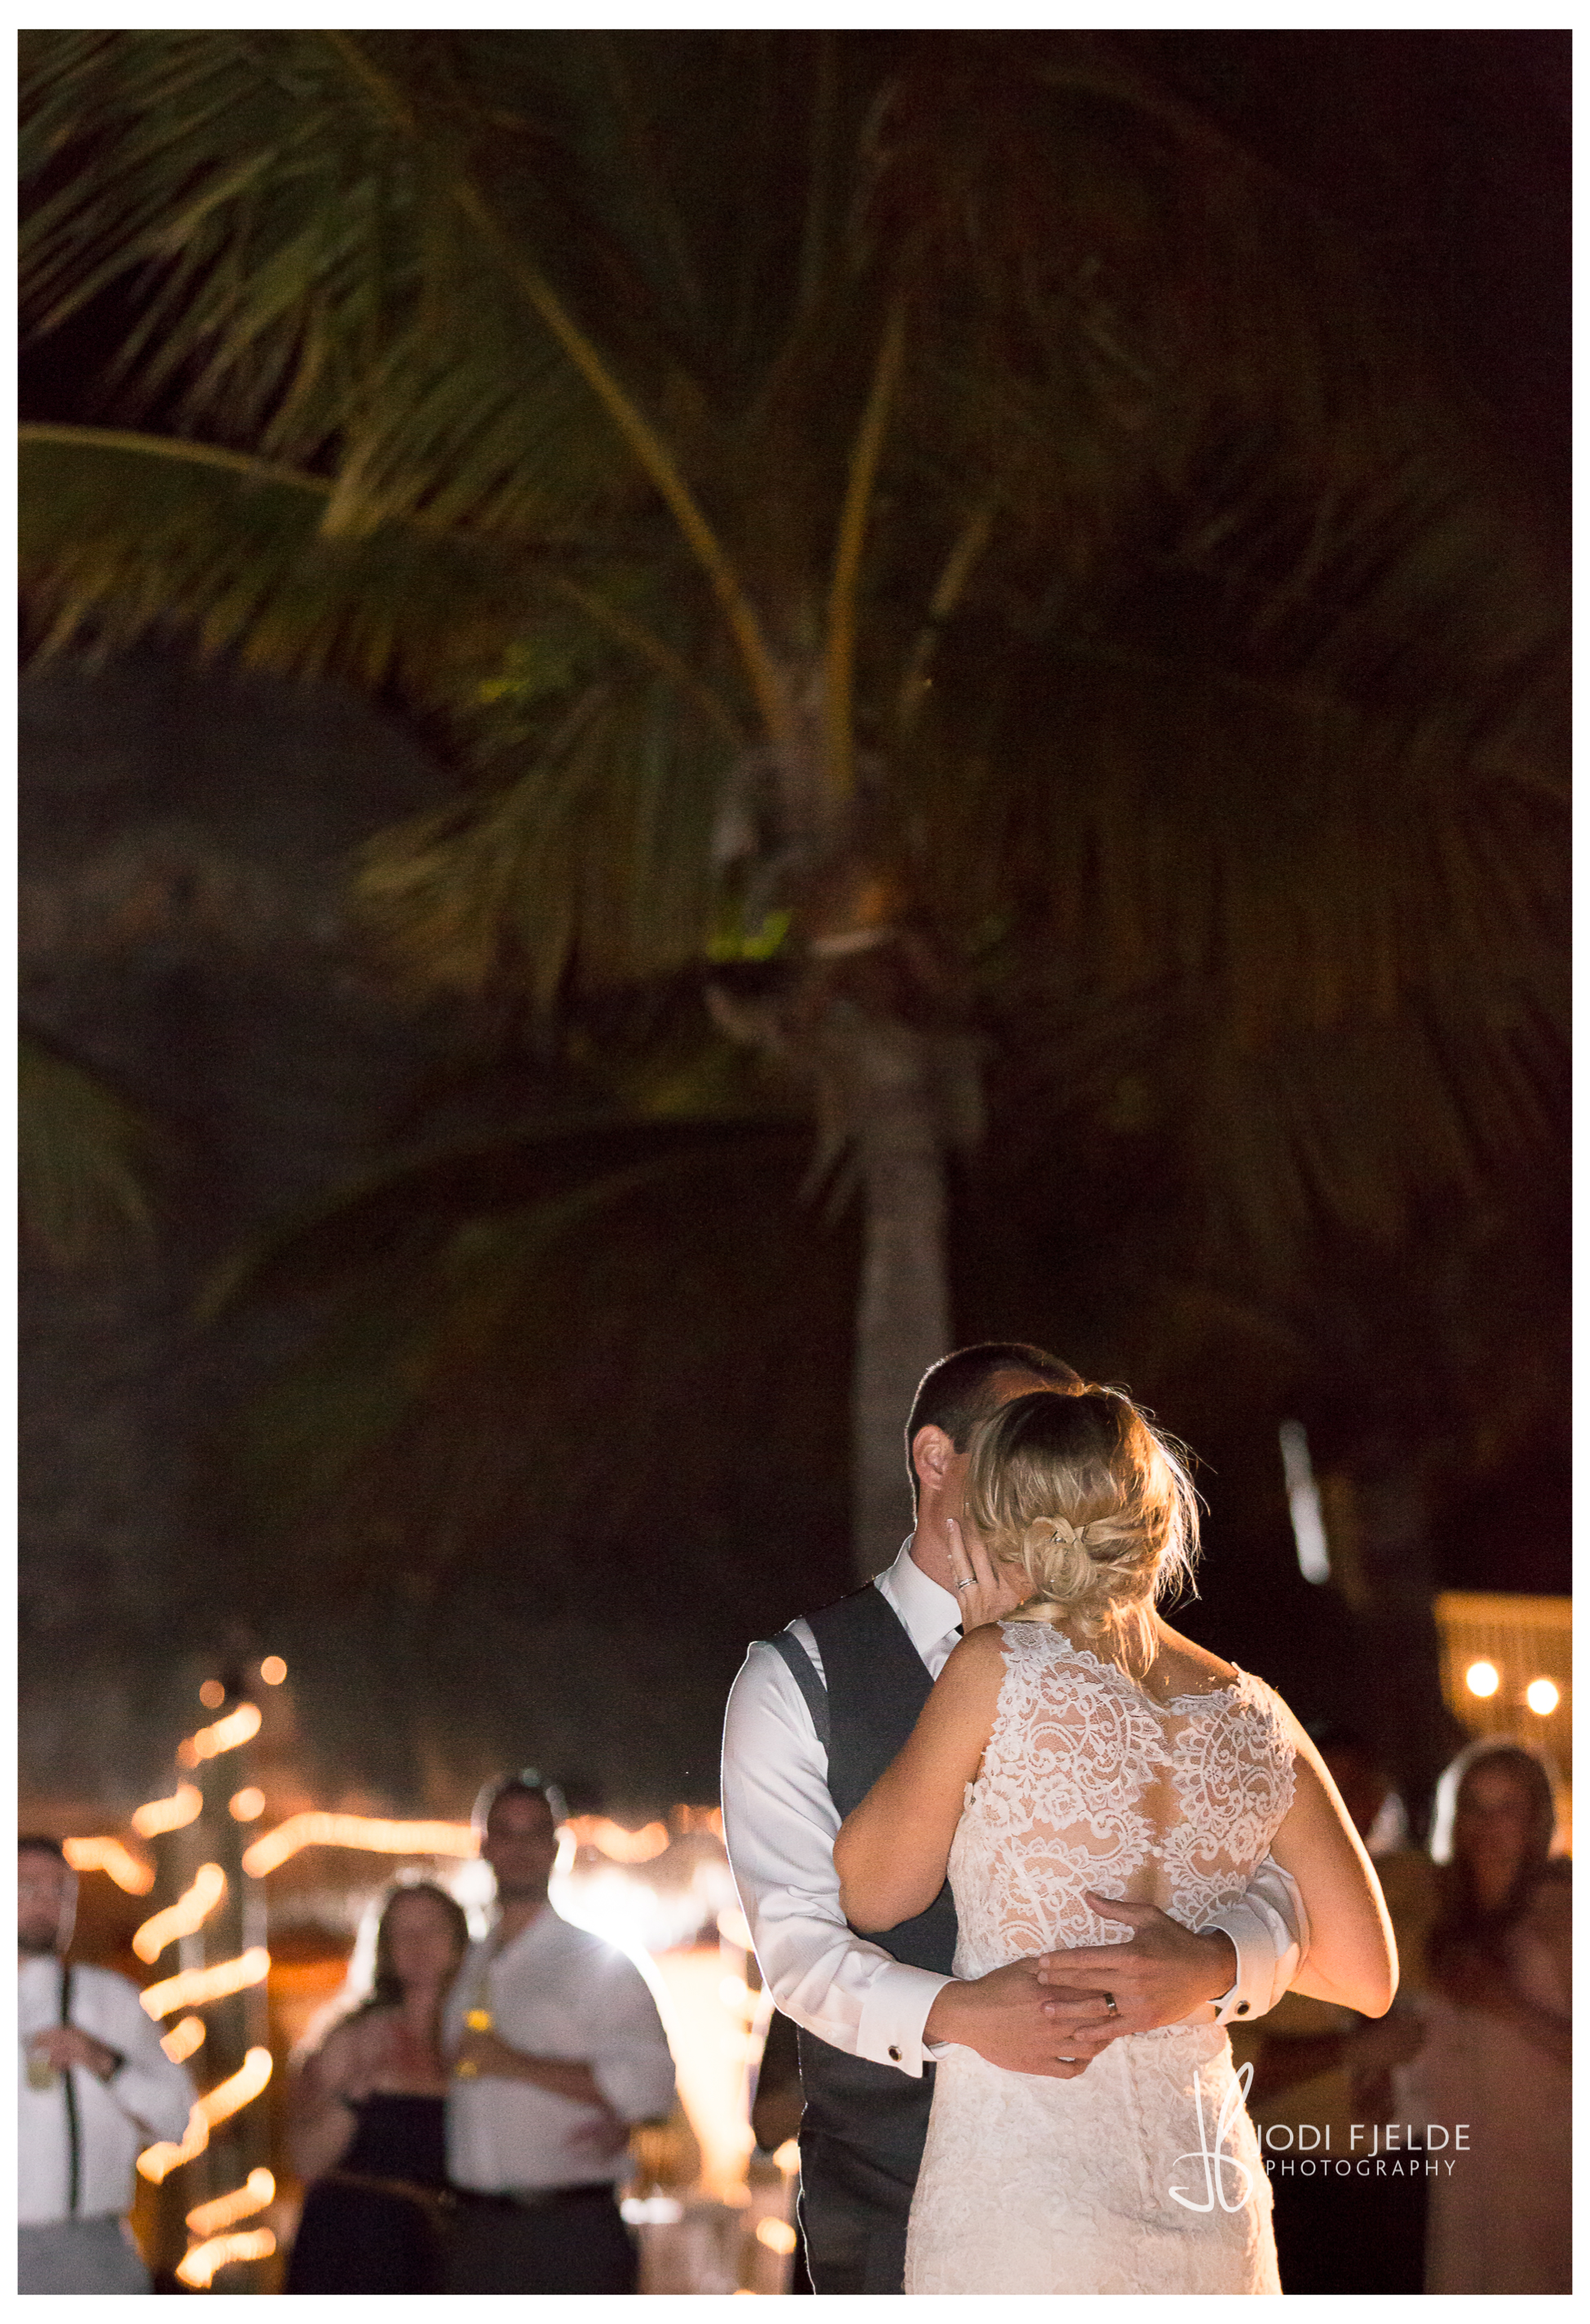 Cocconut_Cove_&_ Marina_ wedding_Kalie_and_Kurt  43-2.jpg